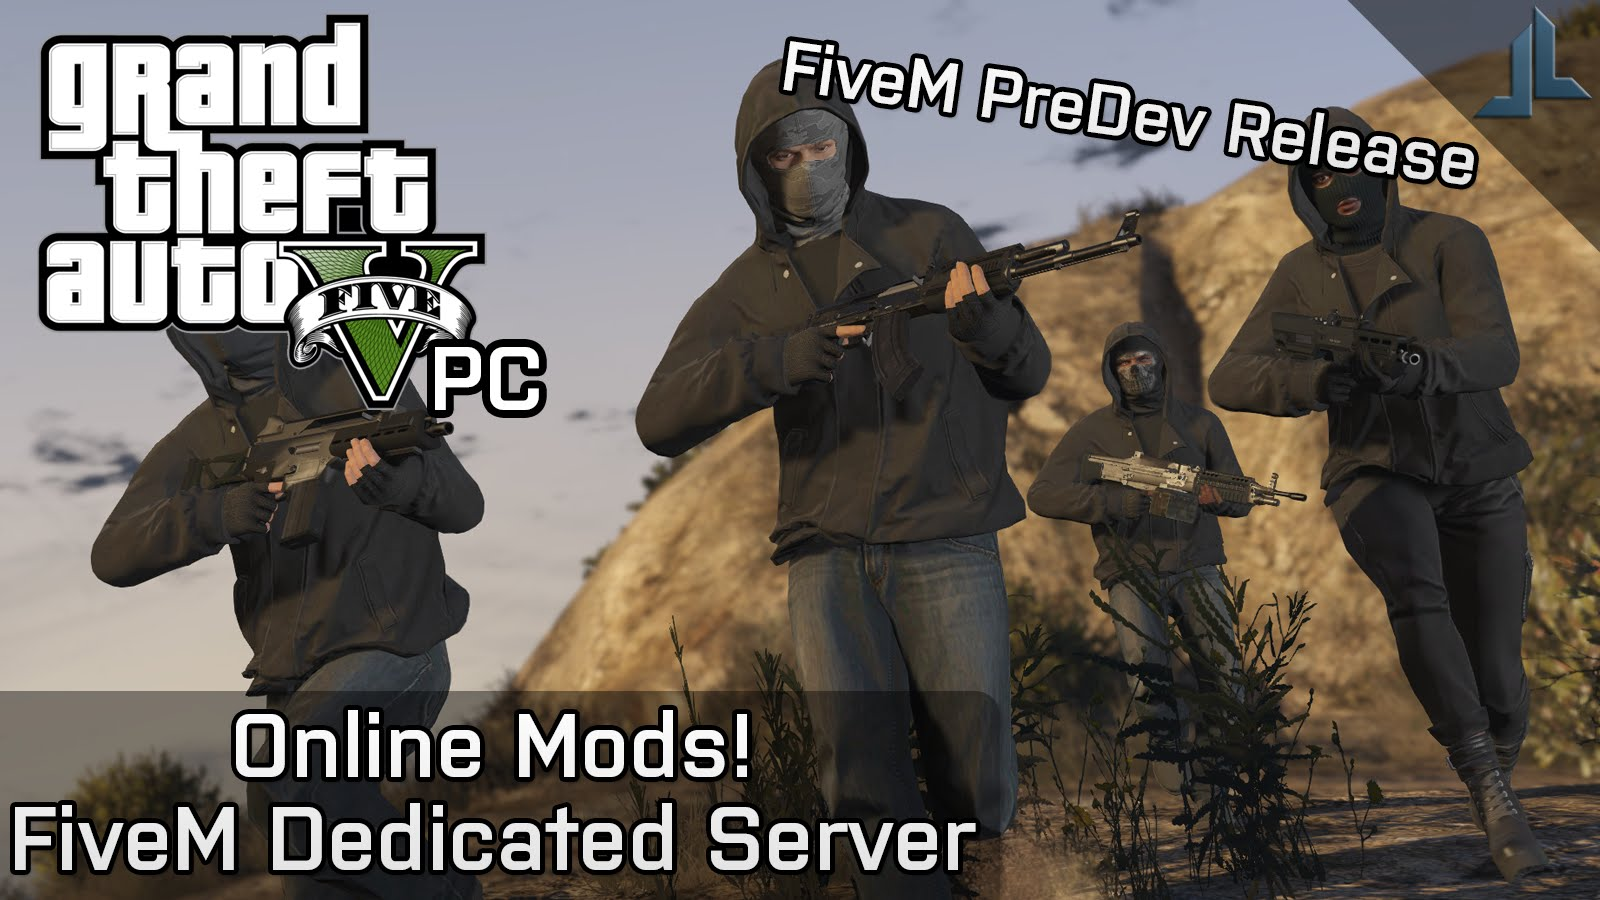 Free Game Zone: How To Play Gta 5 online On Pc (FiveM